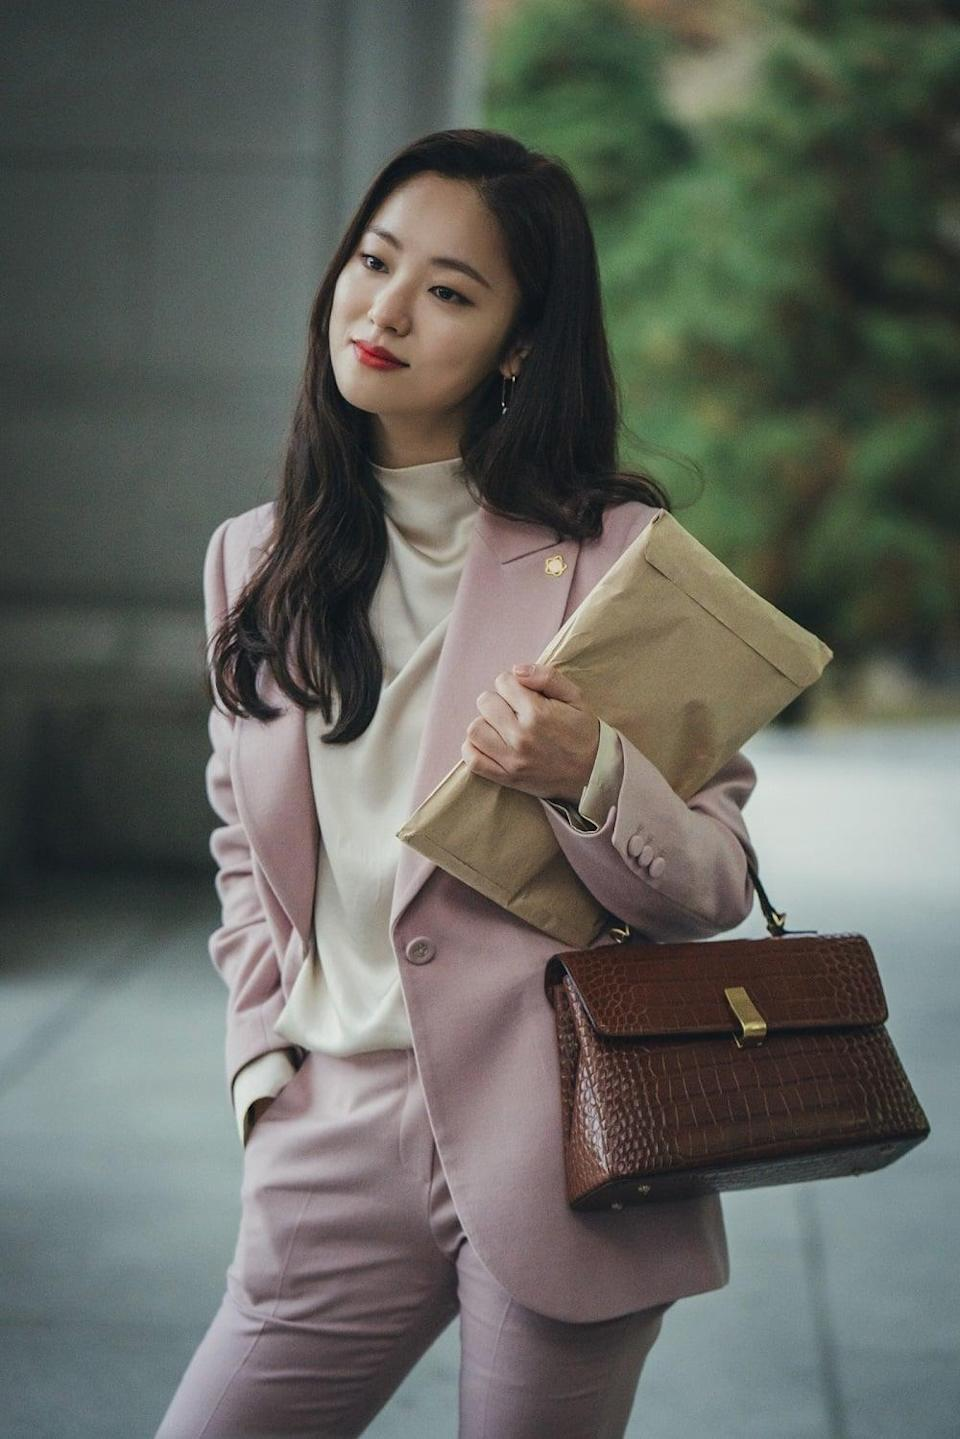 """<p>What else would you wear for your day in court taking down an evil, murderous pharmaceutical company but a cool pink power suit? Snap up the <a href=""""http://www.momokorea.com/women/outer-w/lwjkkj0200.html"""" class=""""link rapid-noclick-resp"""" rel=""""nofollow noopener"""" target=""""_blank"""" data-ylk=""""slk:Lynn wool blazer"""">Lynn wool blazer</a> ($658) and <a href=""""http://www.momokorea.com/women/womens-pants/lwslkj0200.html"""" class=""""link rapid-noclick-resp"""" rel=""""nofollow noopener"""" target=""""_blank"""" data-ylk=""""slk:pants"""">pants</a> ($418) for the next time you have to take down a baddie, Cha-Young style.</p>"""